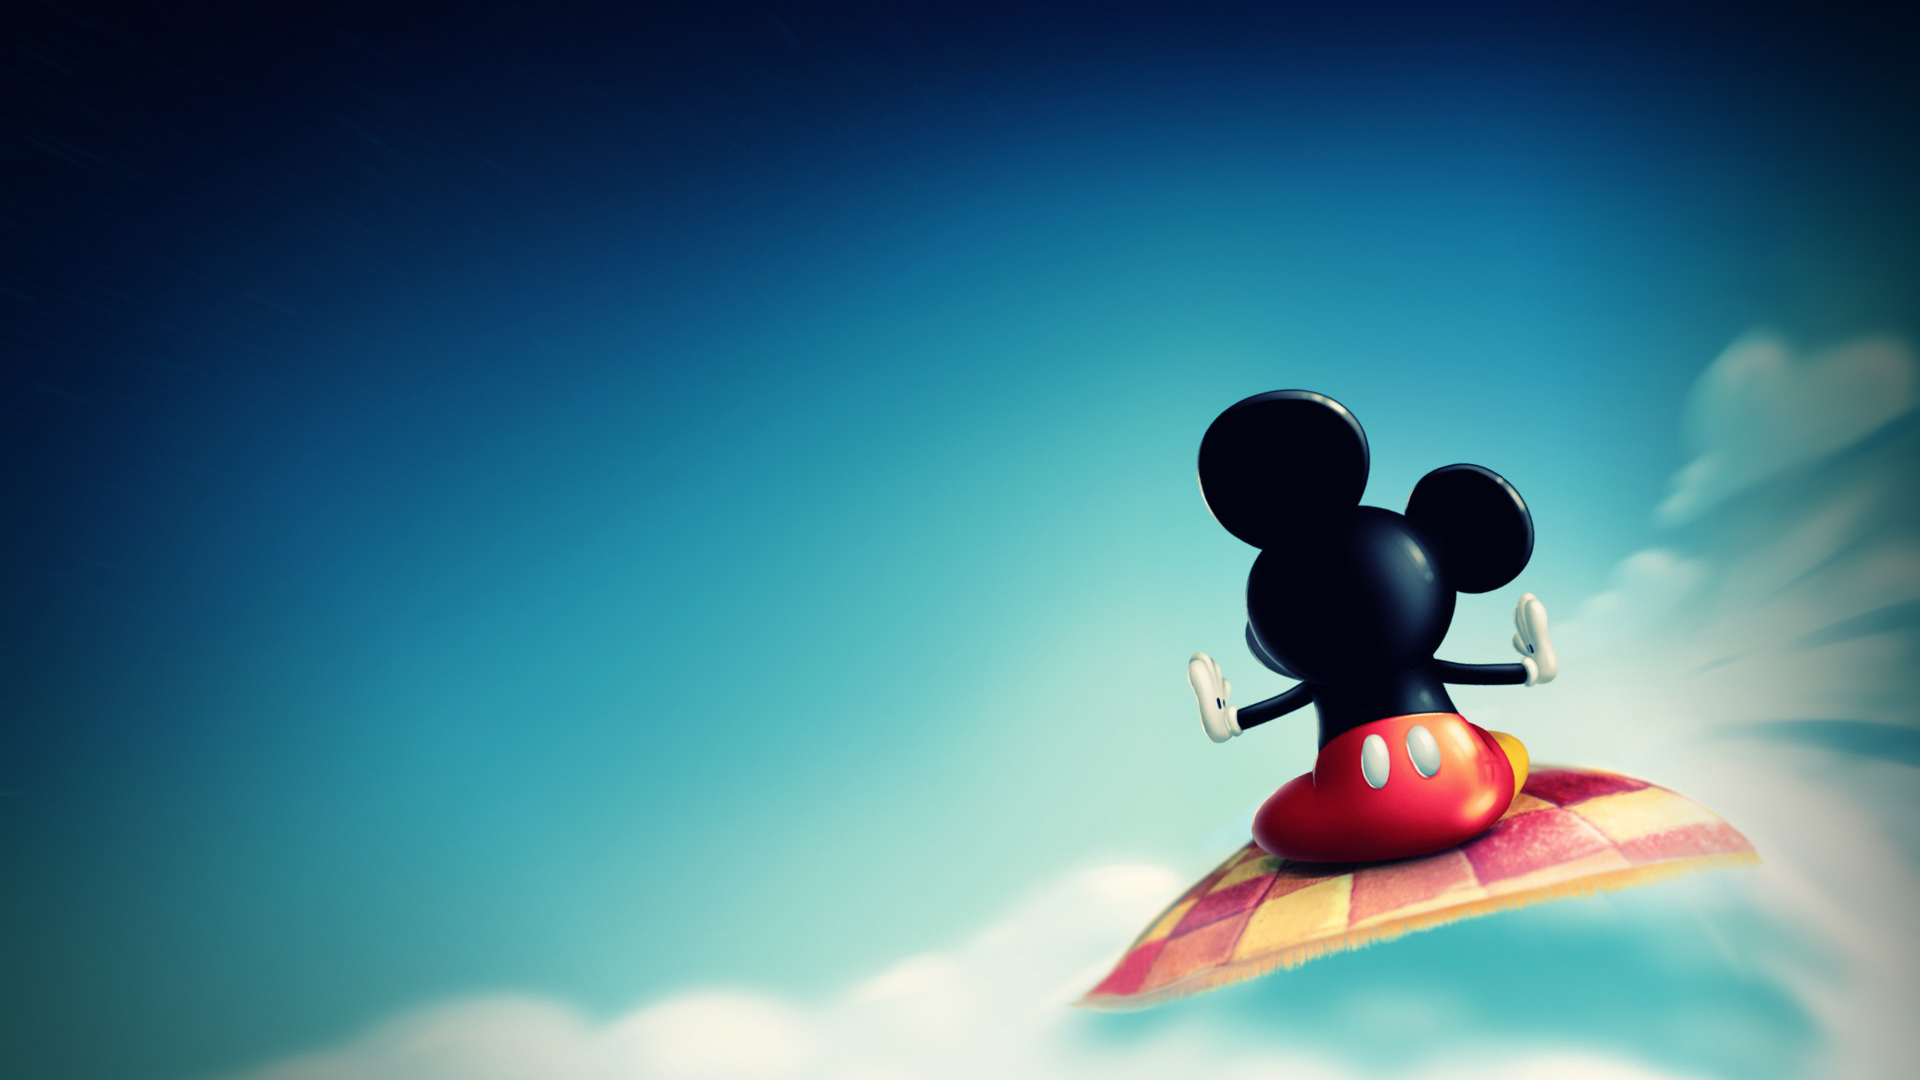 Mickey Mouse hd wallpapers HD Wallpaper 1920x1080